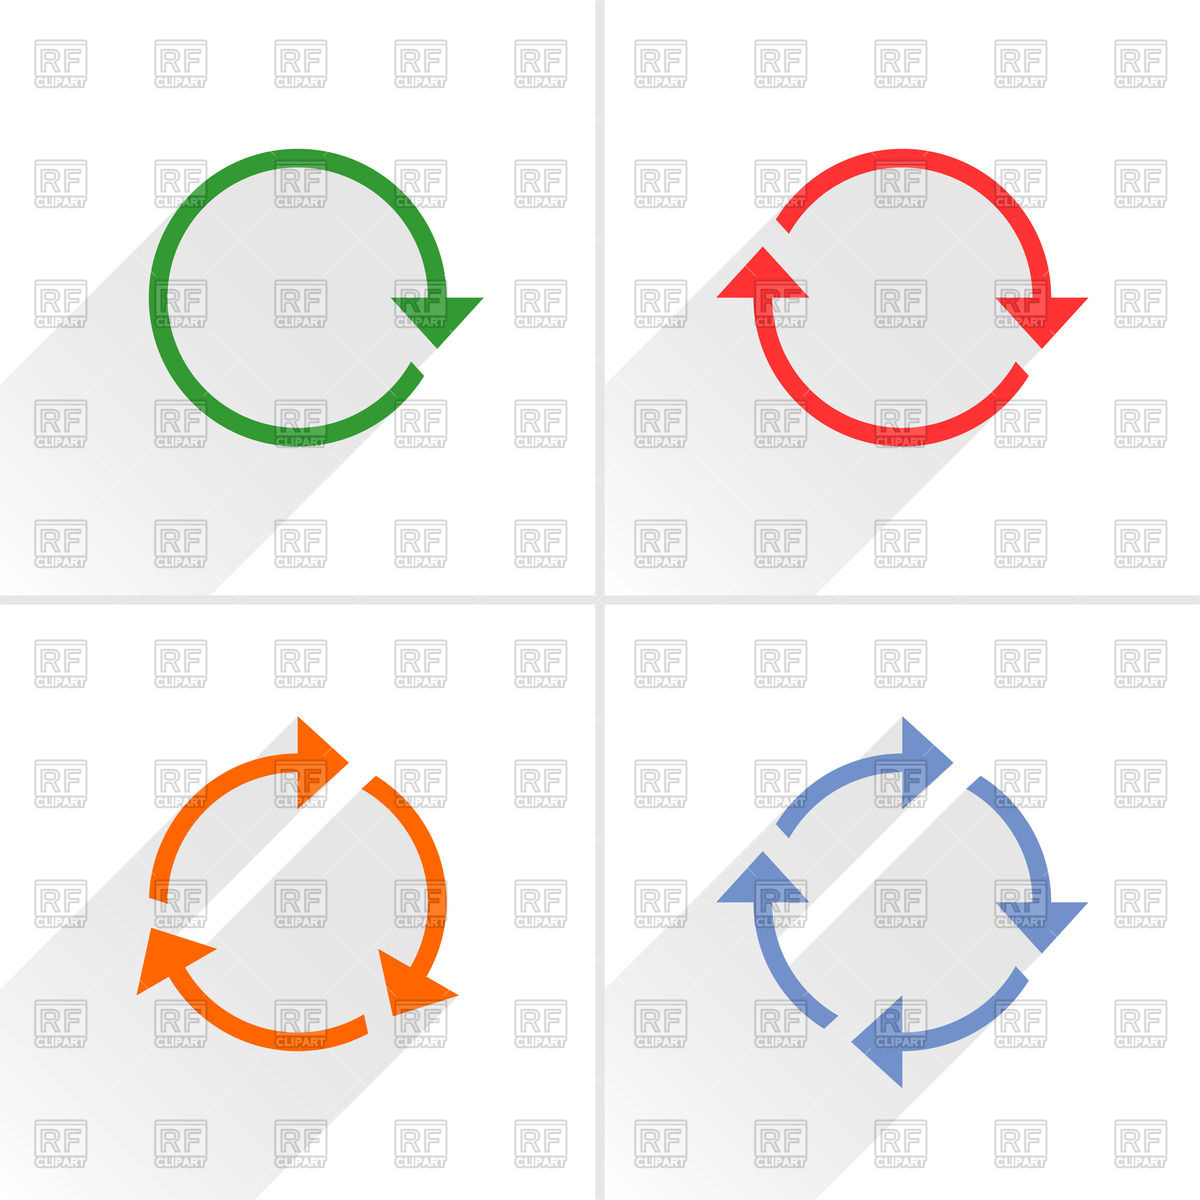 Thin rotary motion arrows Vector Image #48739.